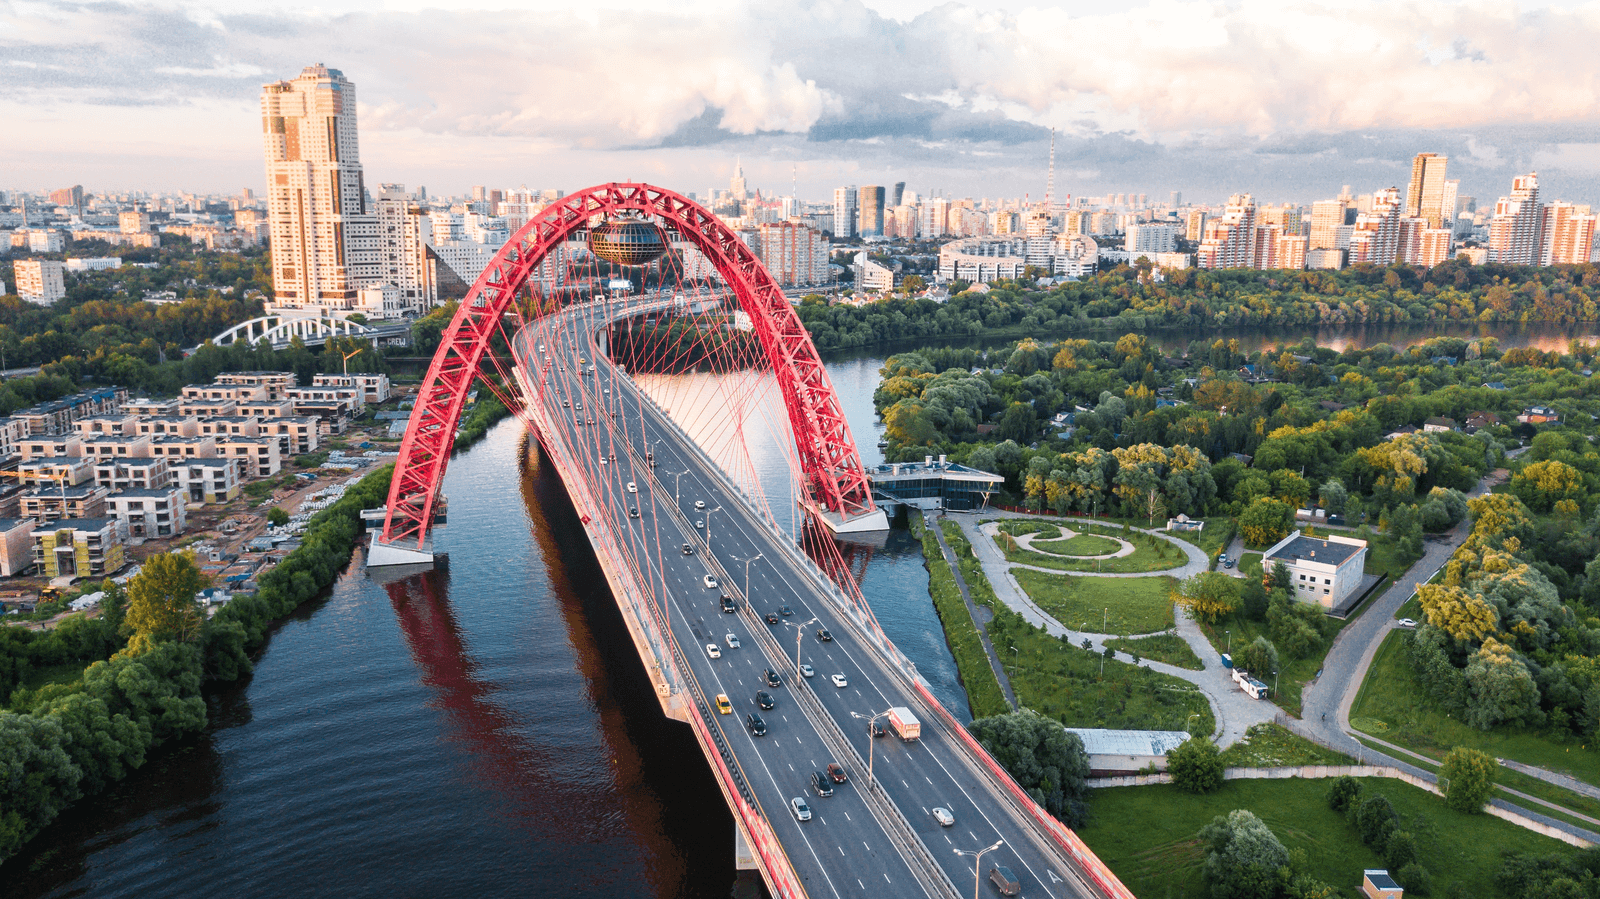 web-png-moscow_russia_alexander-smagin-627461-unsplash